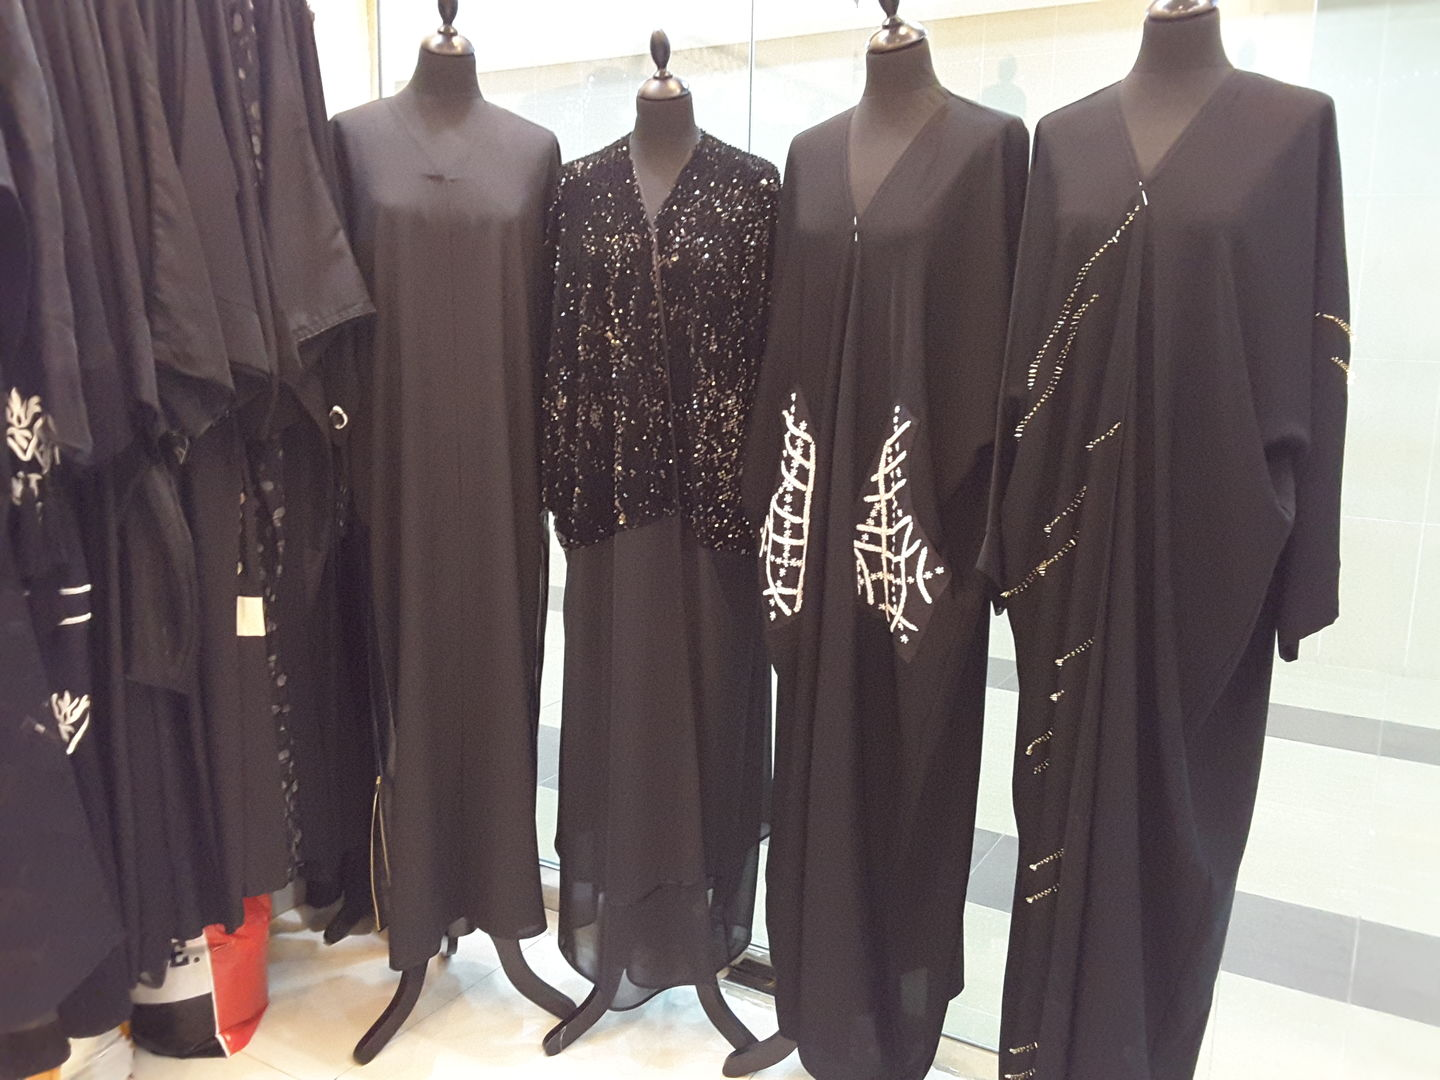 HiDubai-business-angel-house-abaya-shaila-shopping-apparel-mirdif-dubai-2